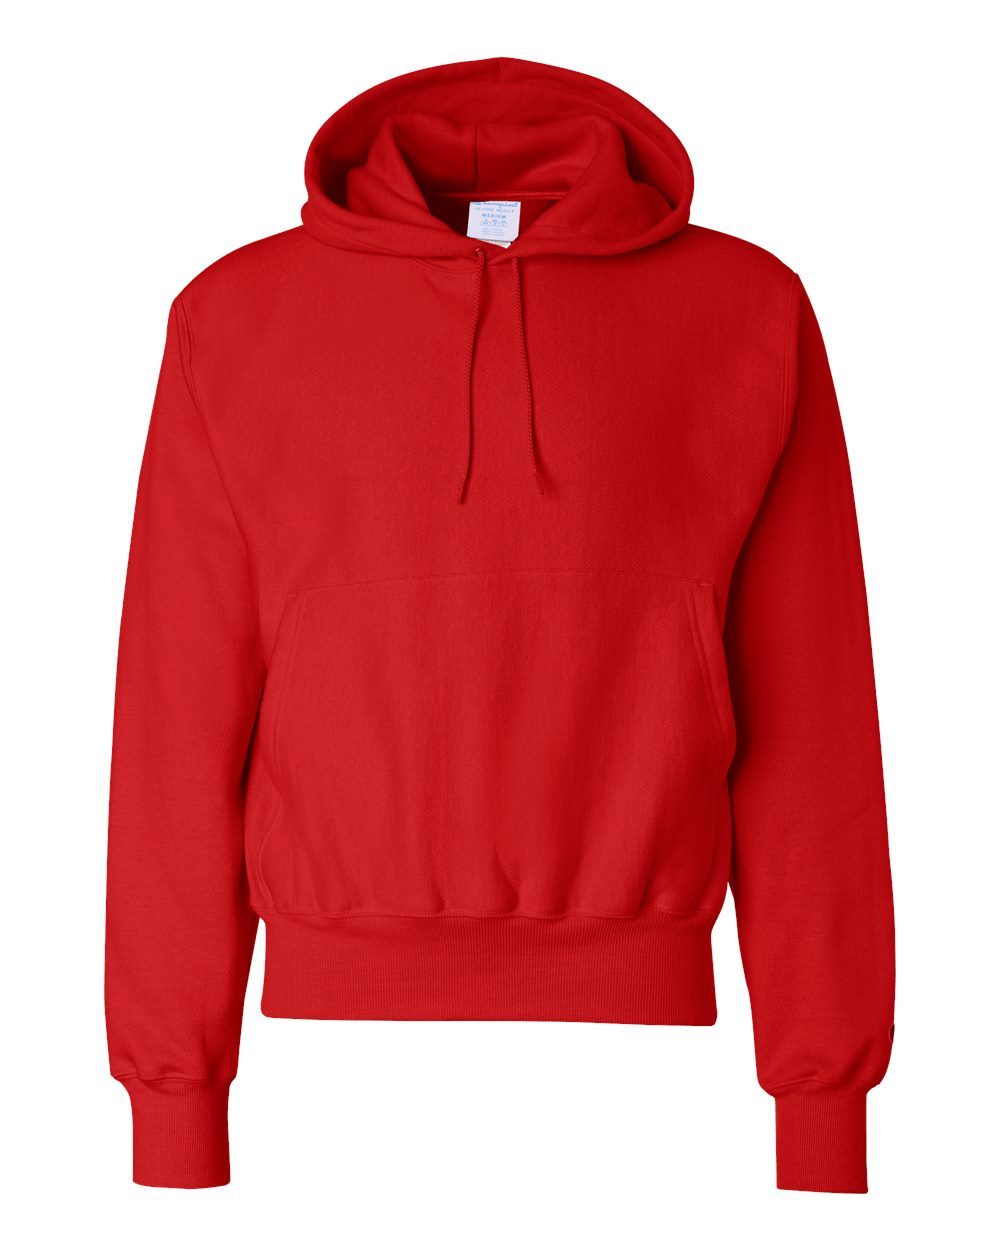 Champion-Mens-Reverse-Weave-Hooded-Pullover-Sweatshirt-S101-up-to-3XL thumbnail 42